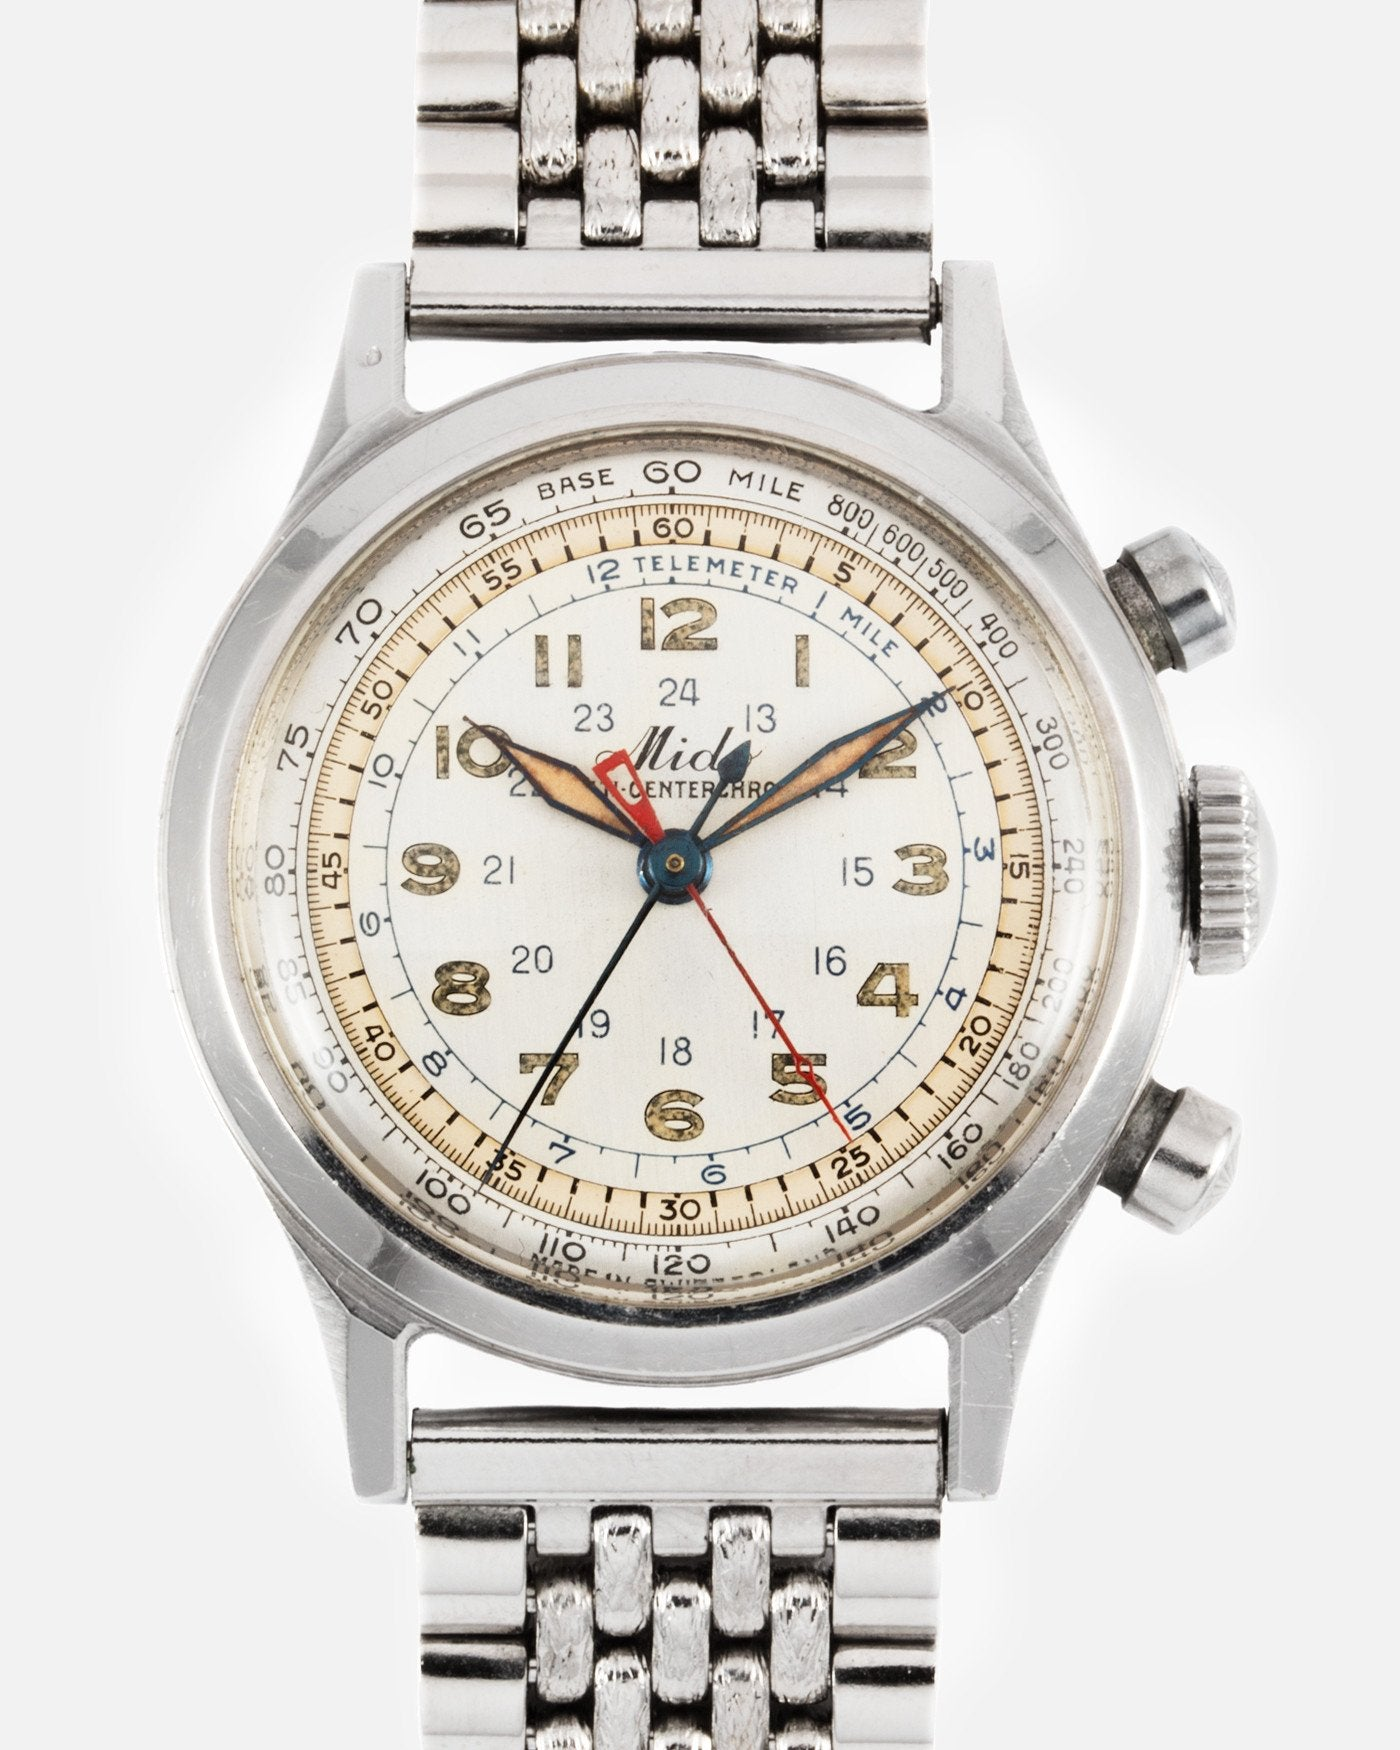 Mido Micro Centrechrono chronograph with a borgel water proof case for A Collected Man London